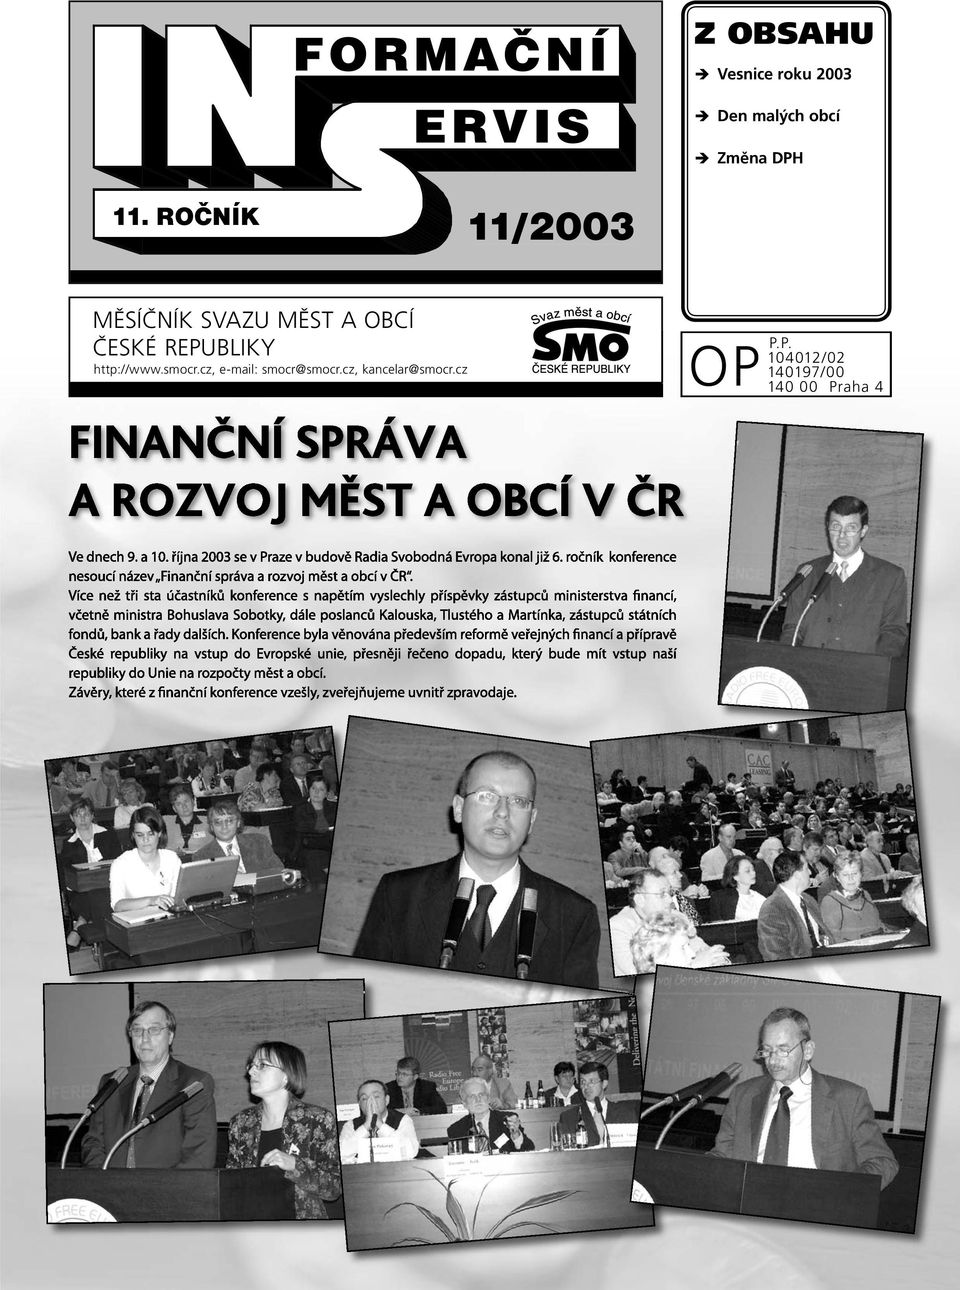 REPUBLIKY http://www.smocr.cz, e-mail: smocr@smocr.